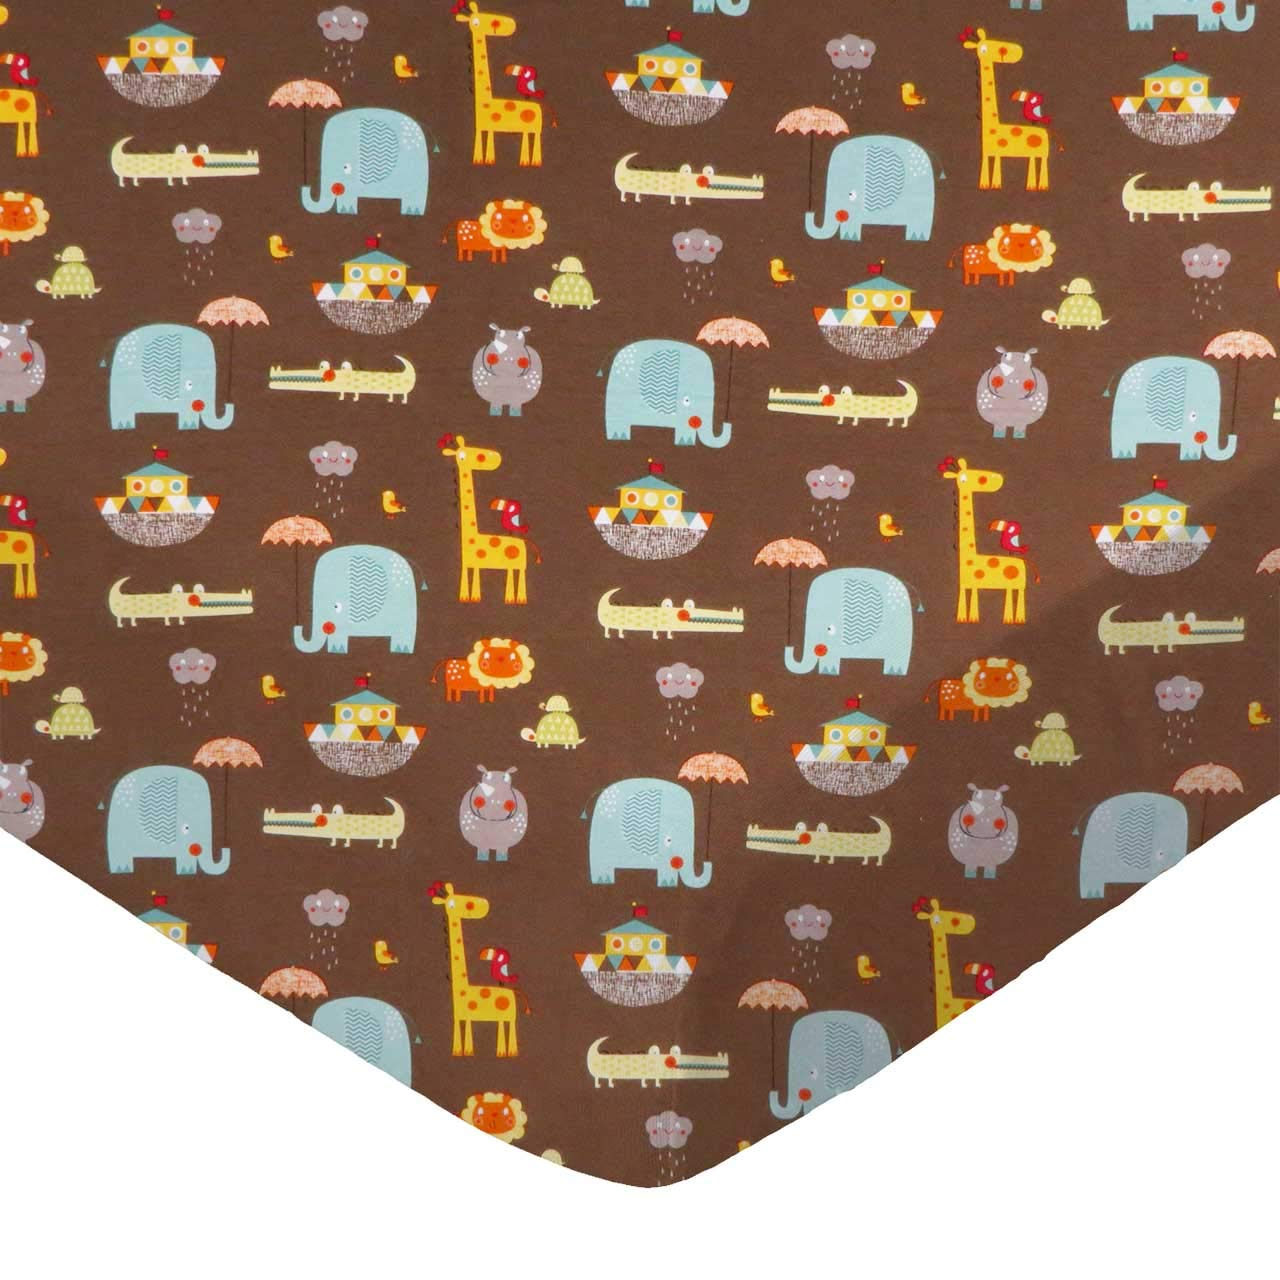 SheetWorld Fitted 100% Cotton Jersey Pack N Play Sheet Fits Graco Square Play Yard 36 x 36, Noahs Ark Brown, Made in USA